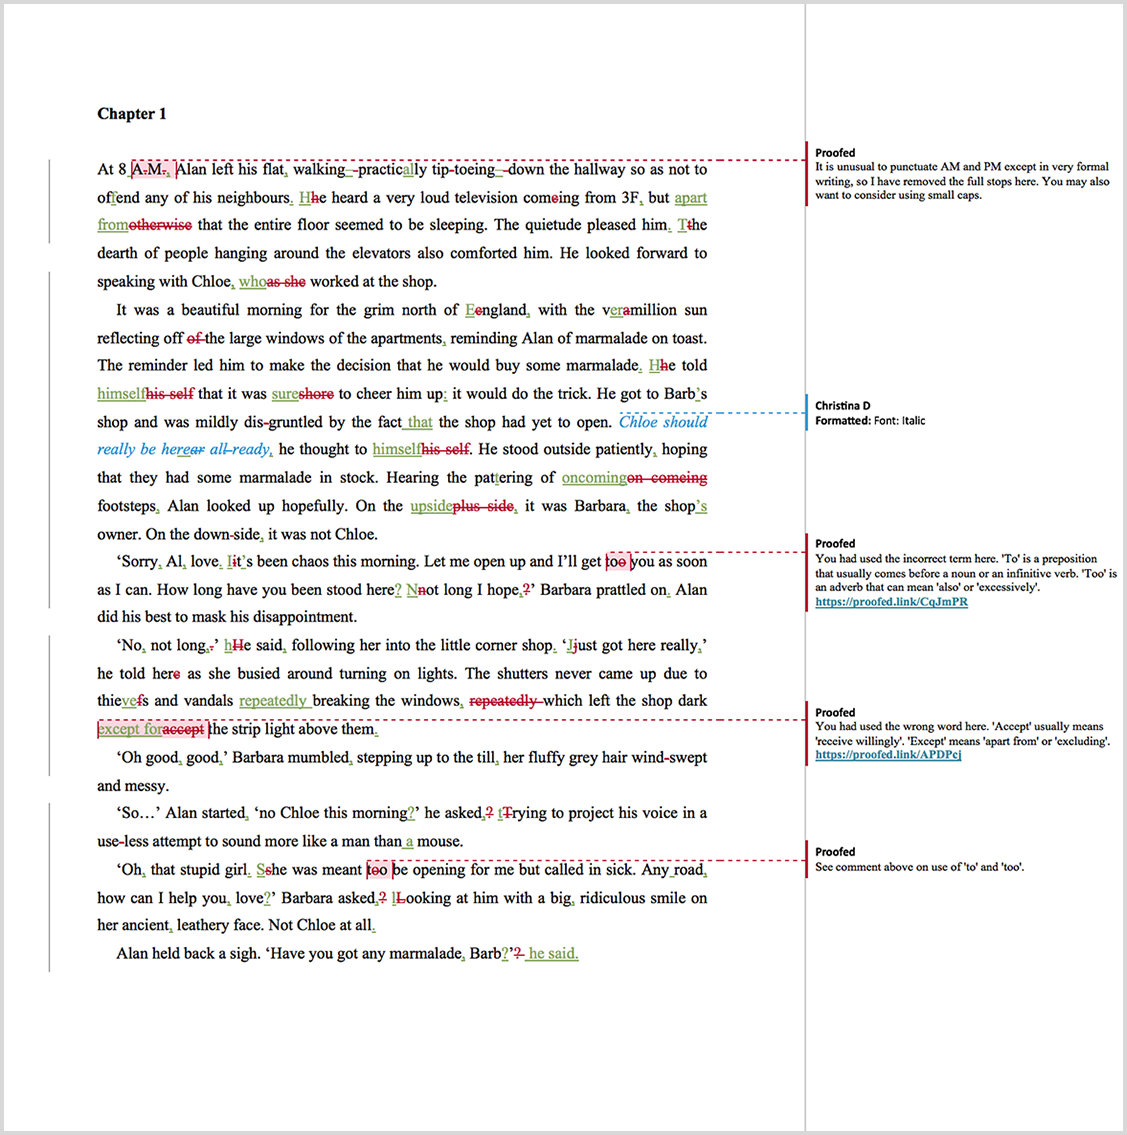 Manuscript proofreading example after editing